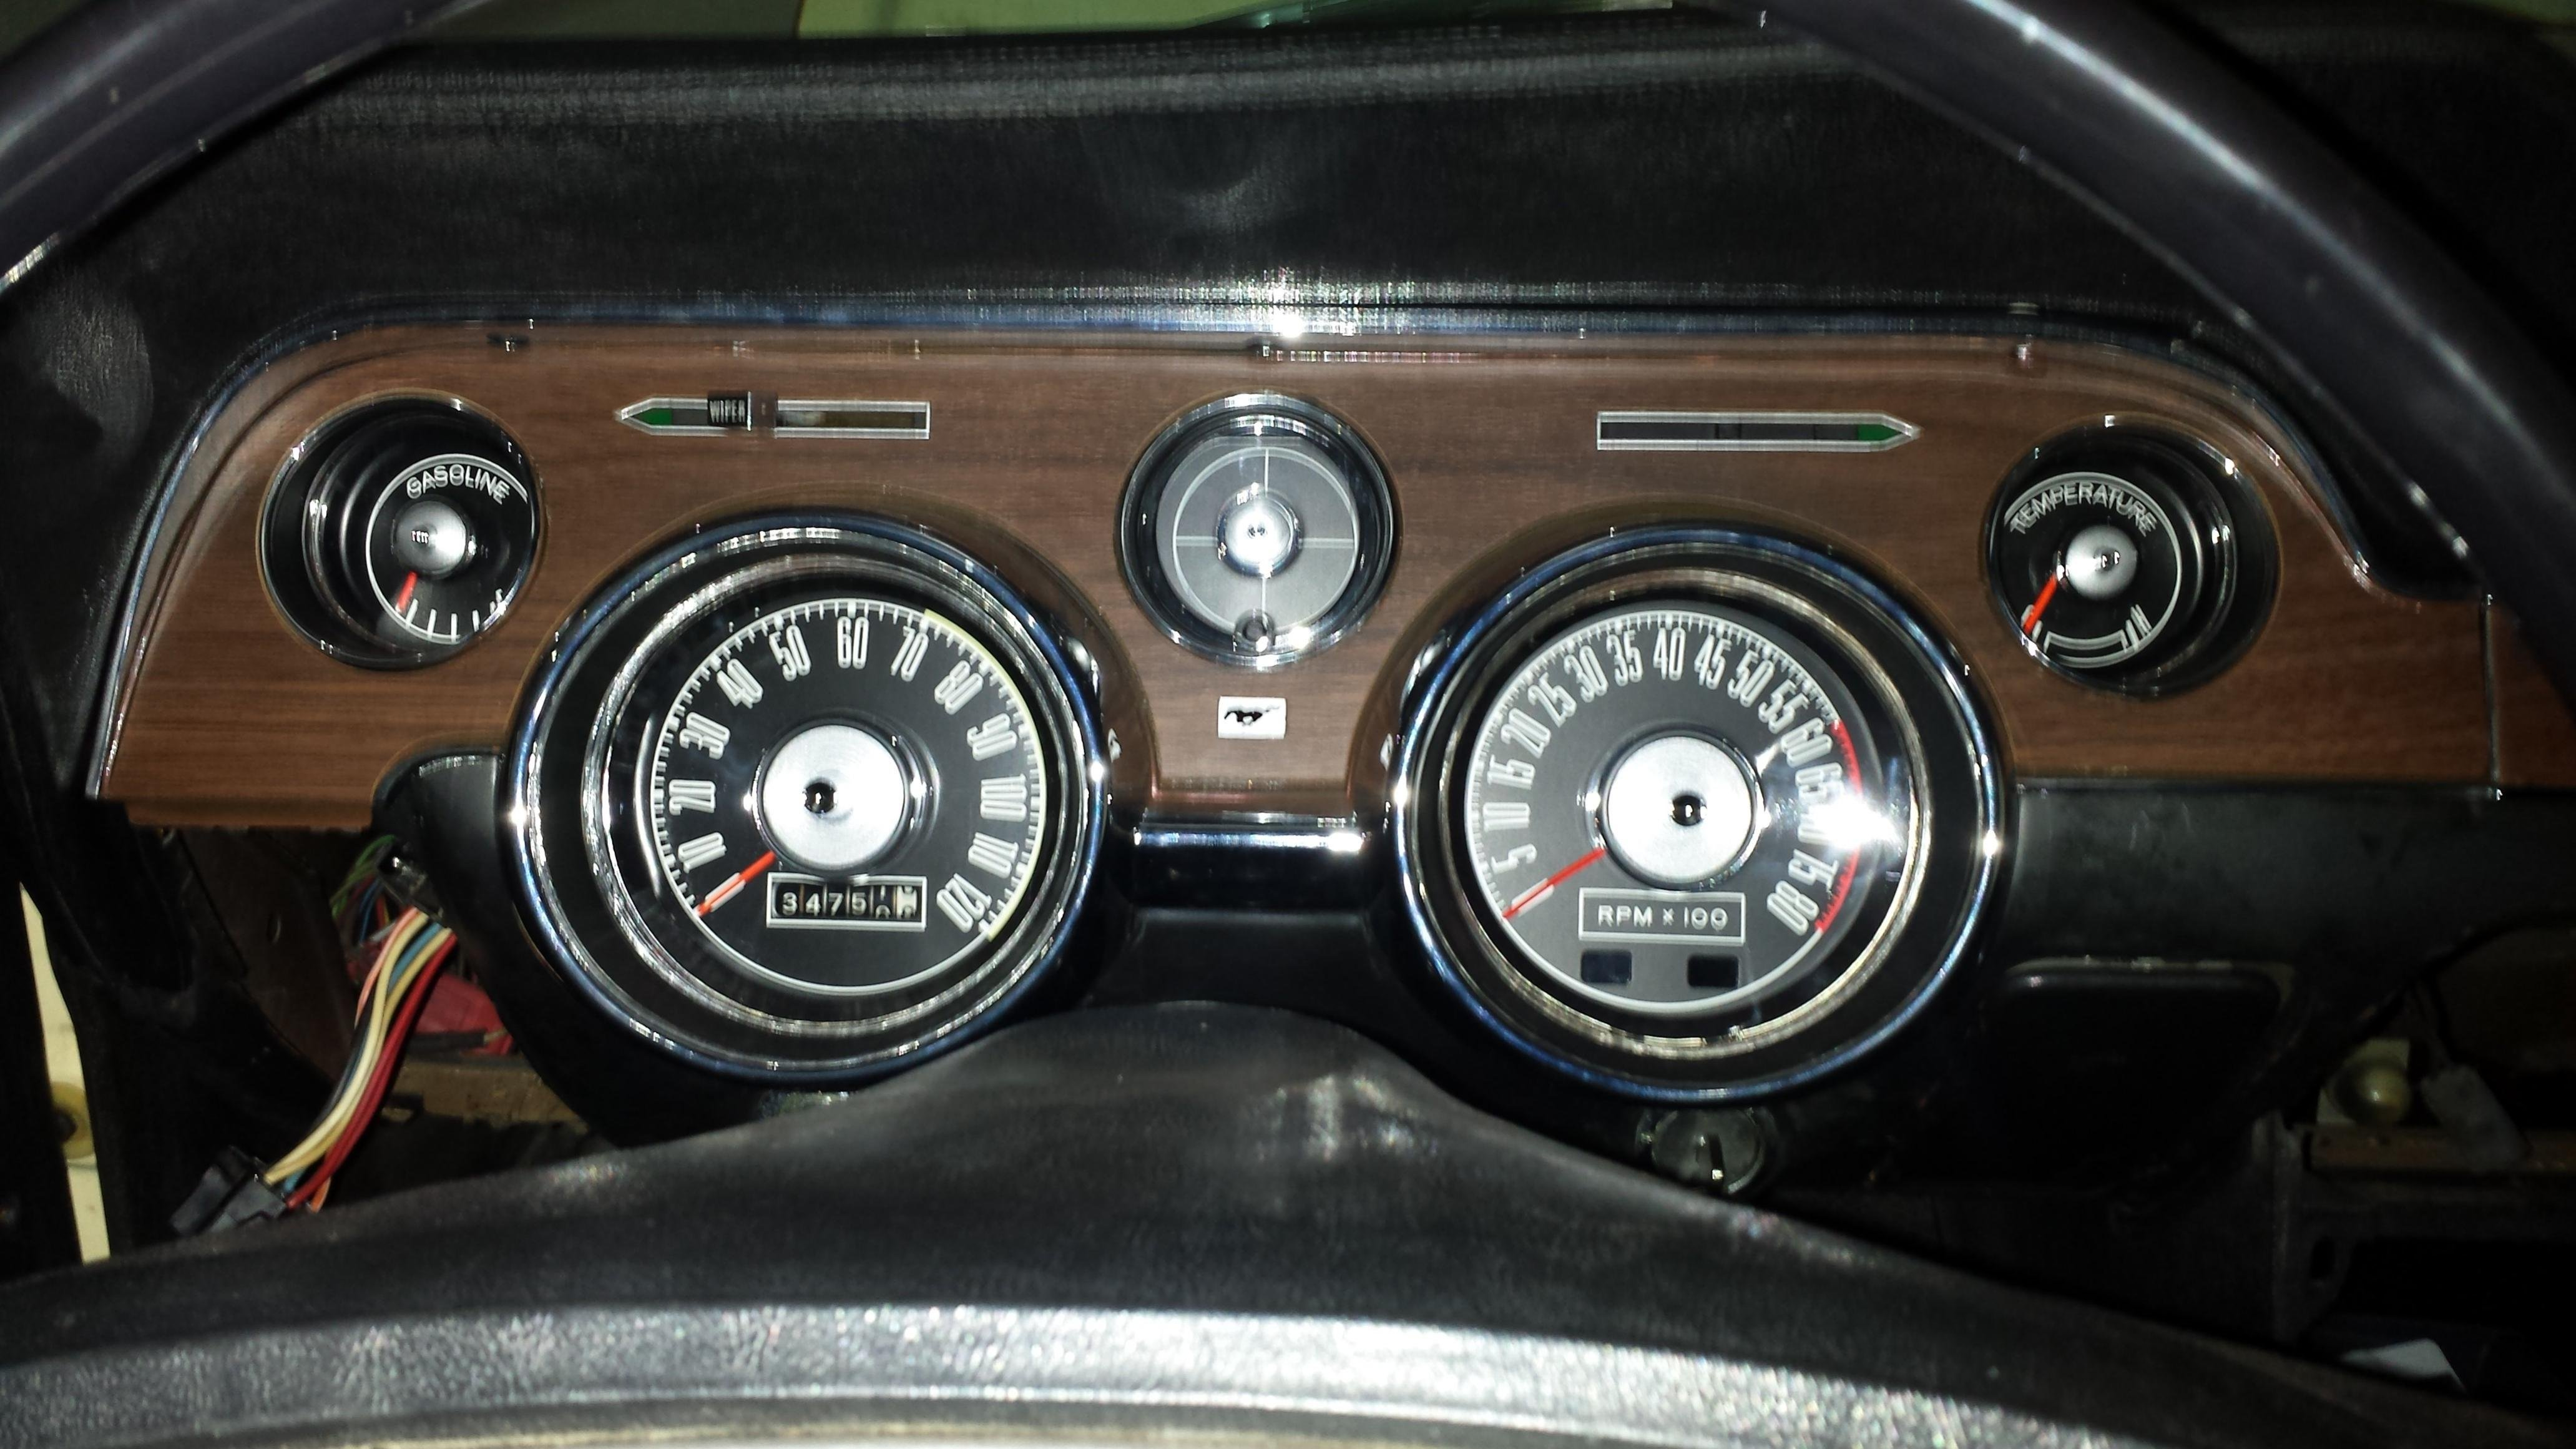 1968 Mustang Dash Pad And Tach Ford Mustang Forum